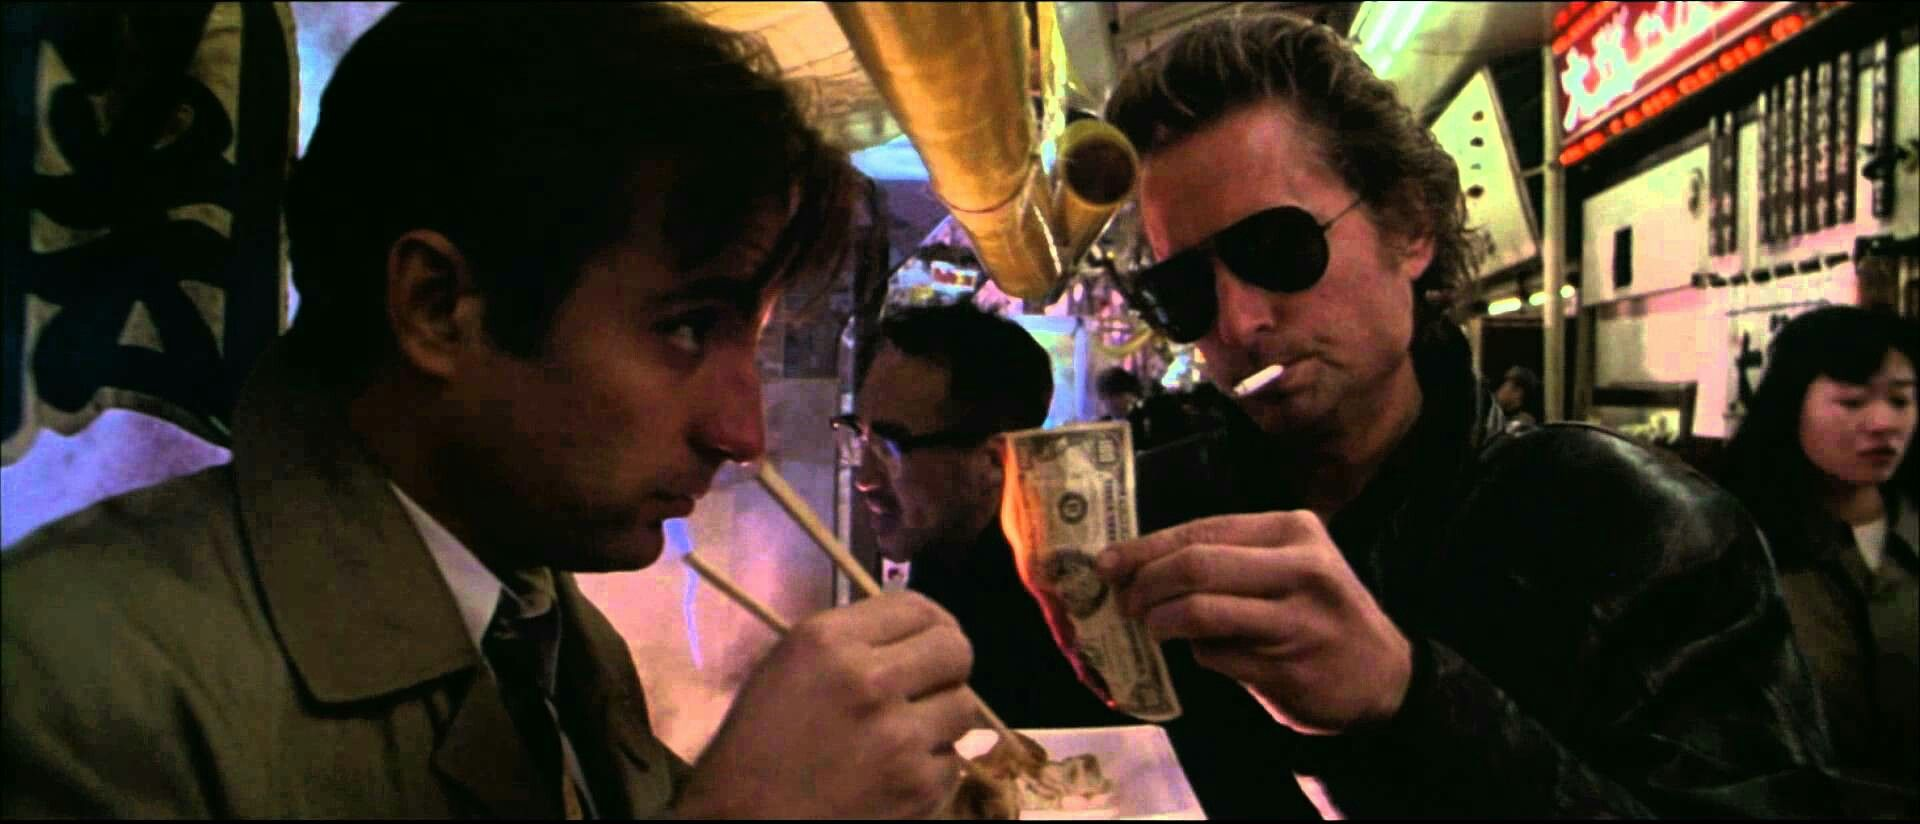 Andy garcia and michael douglas in a timesless film